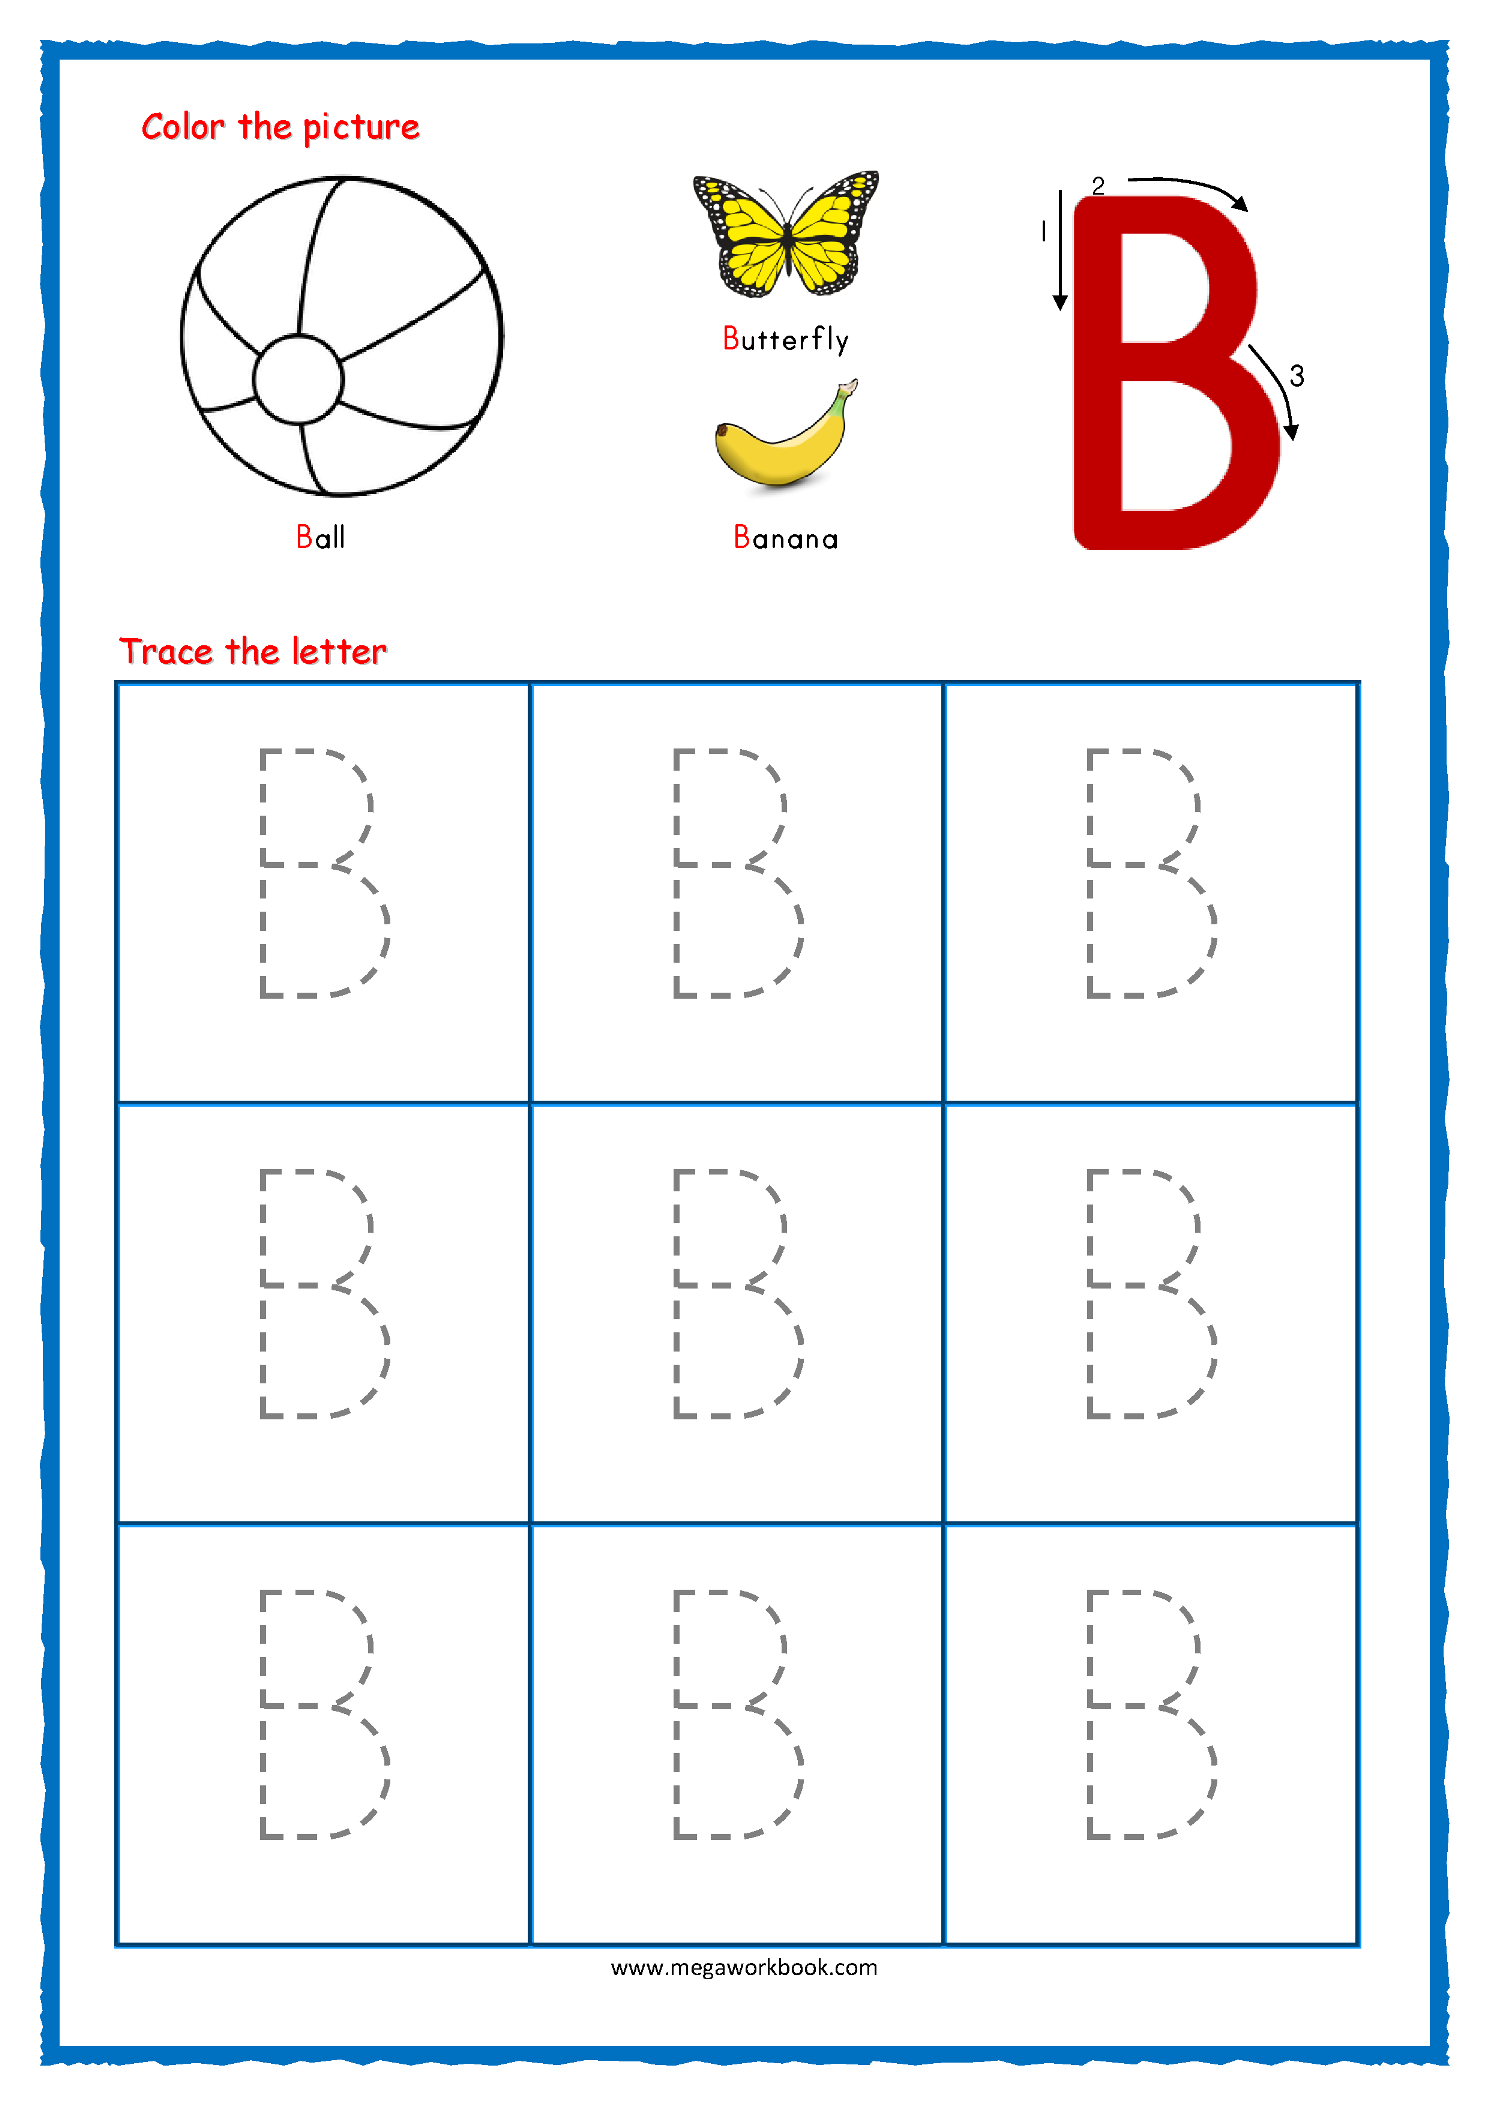 Tracing Letters - Alphabet Tracing - Capital Letters for Alphabet Tracing Letters Pdf